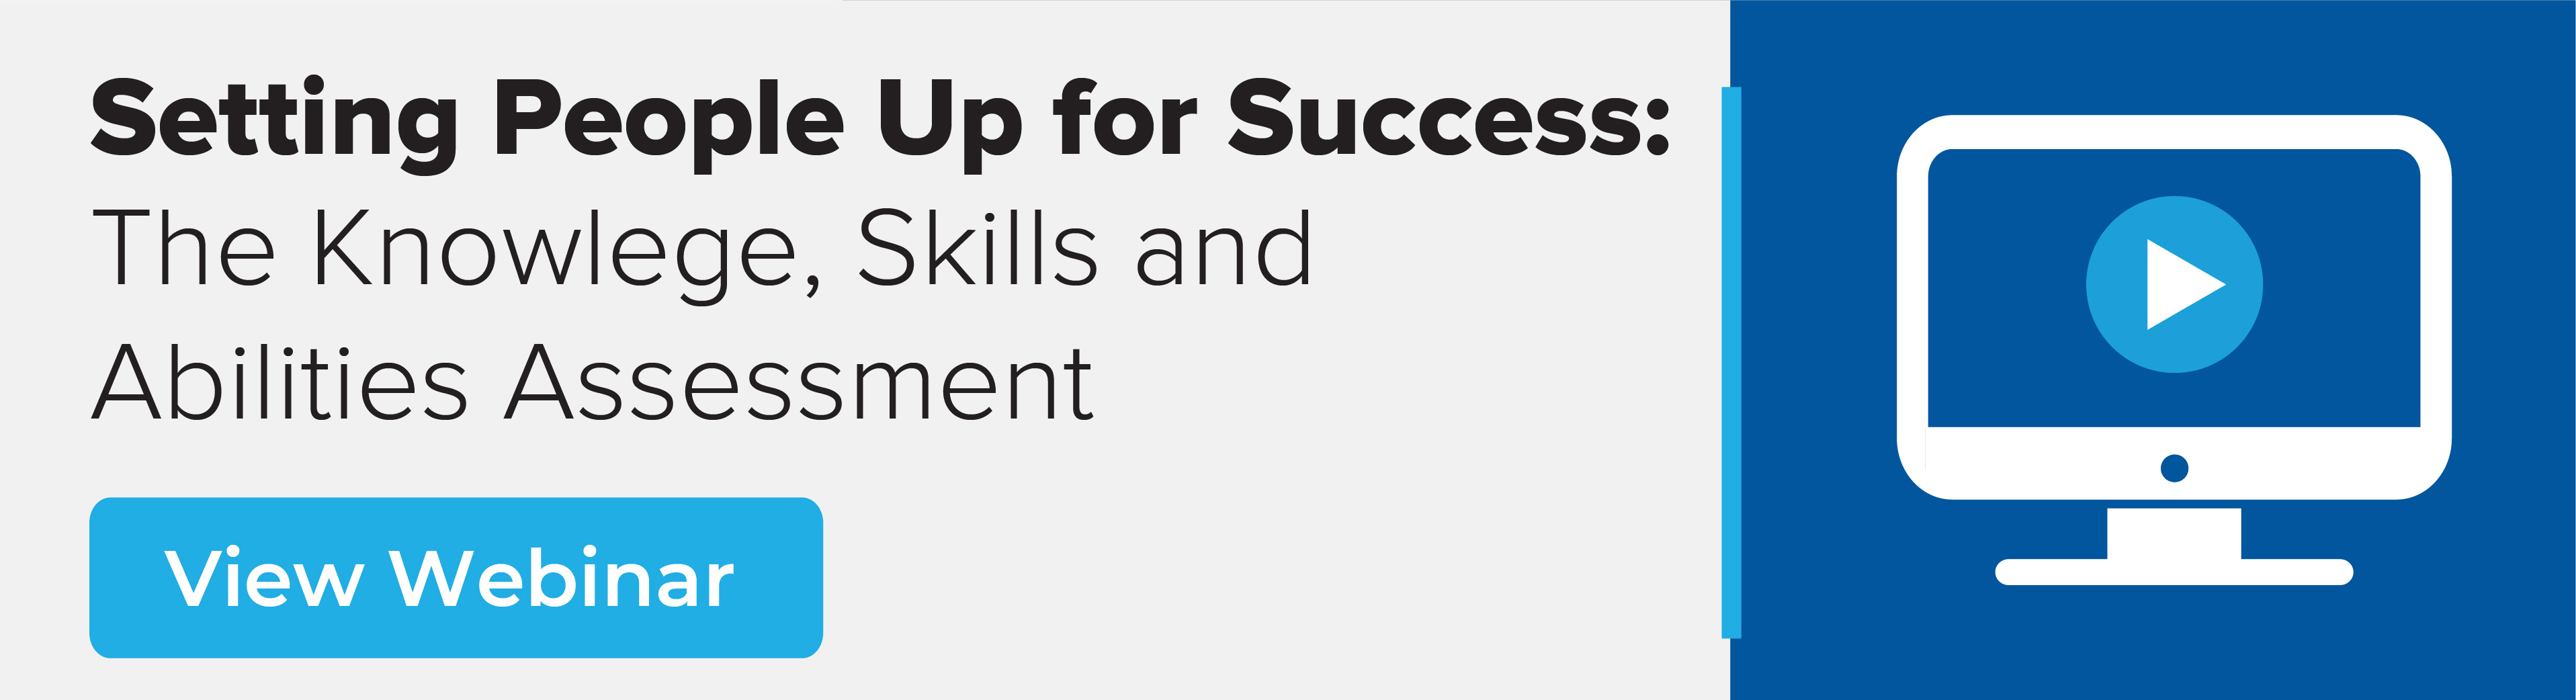 Setting People Up for Success: The Knowledge, Skills and Abilities Assessment Webinar